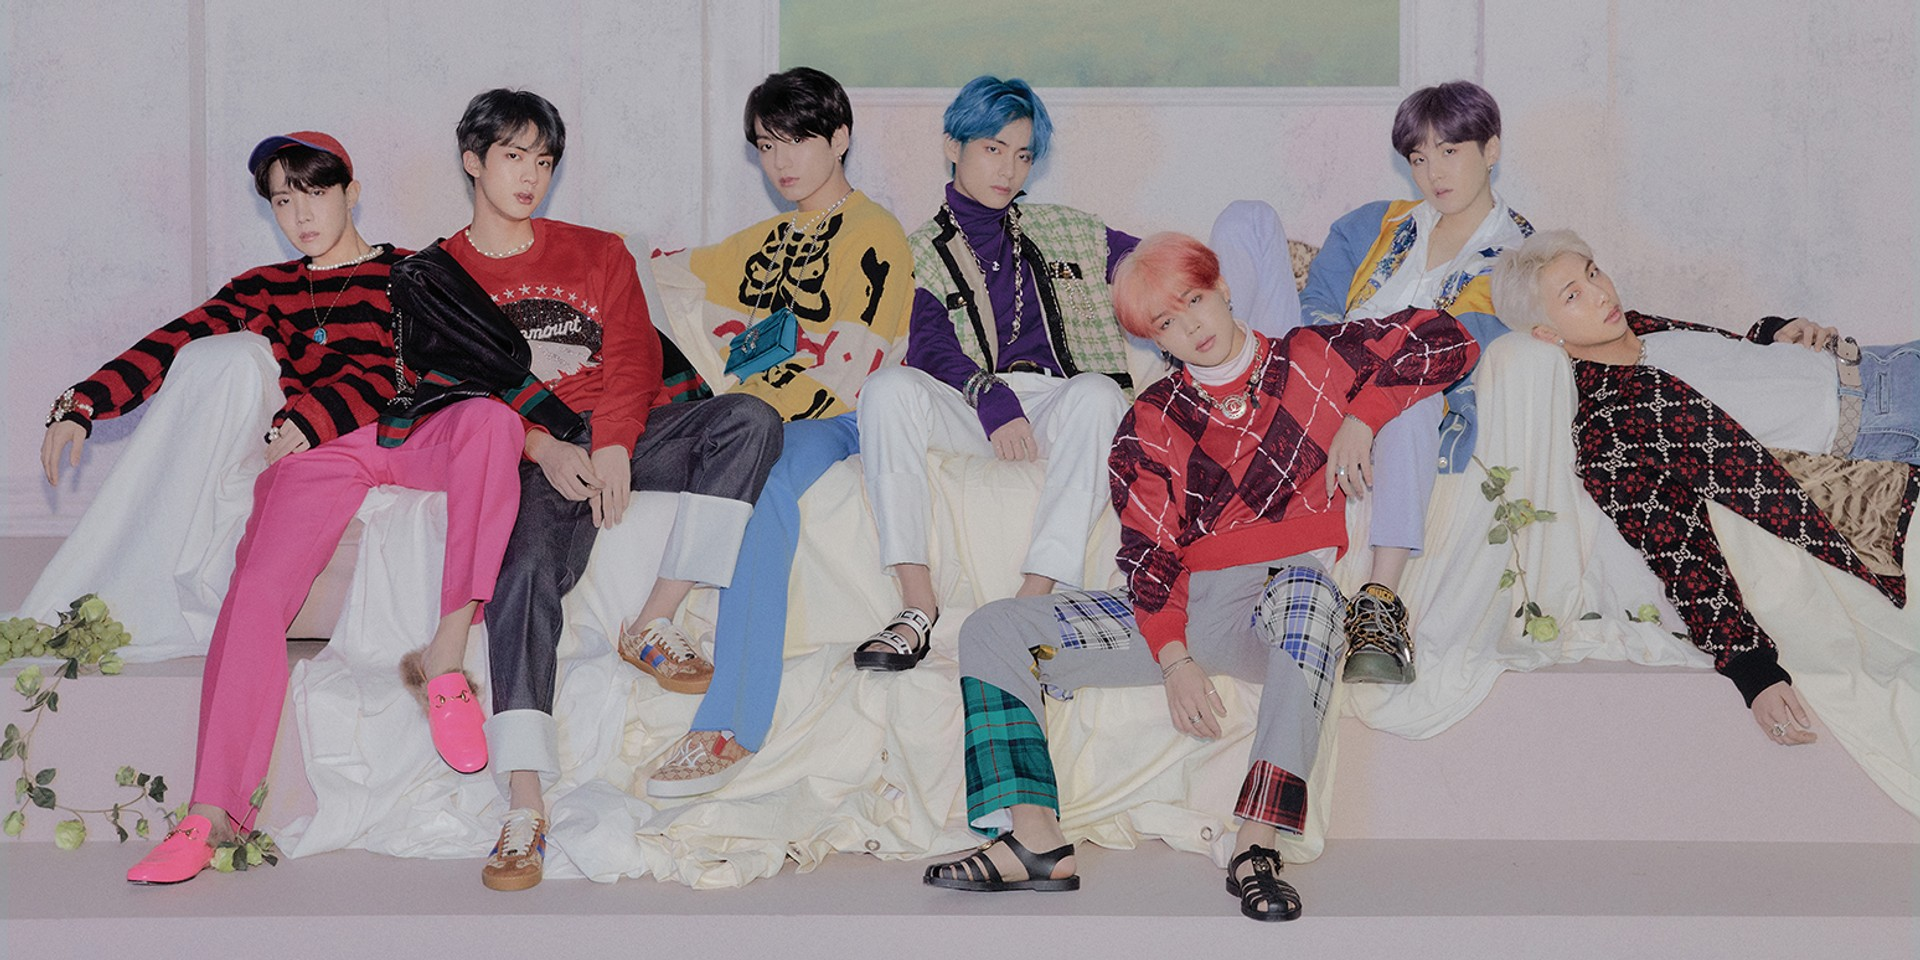 BTS announce new album, Map of the Soul: 7, out next month